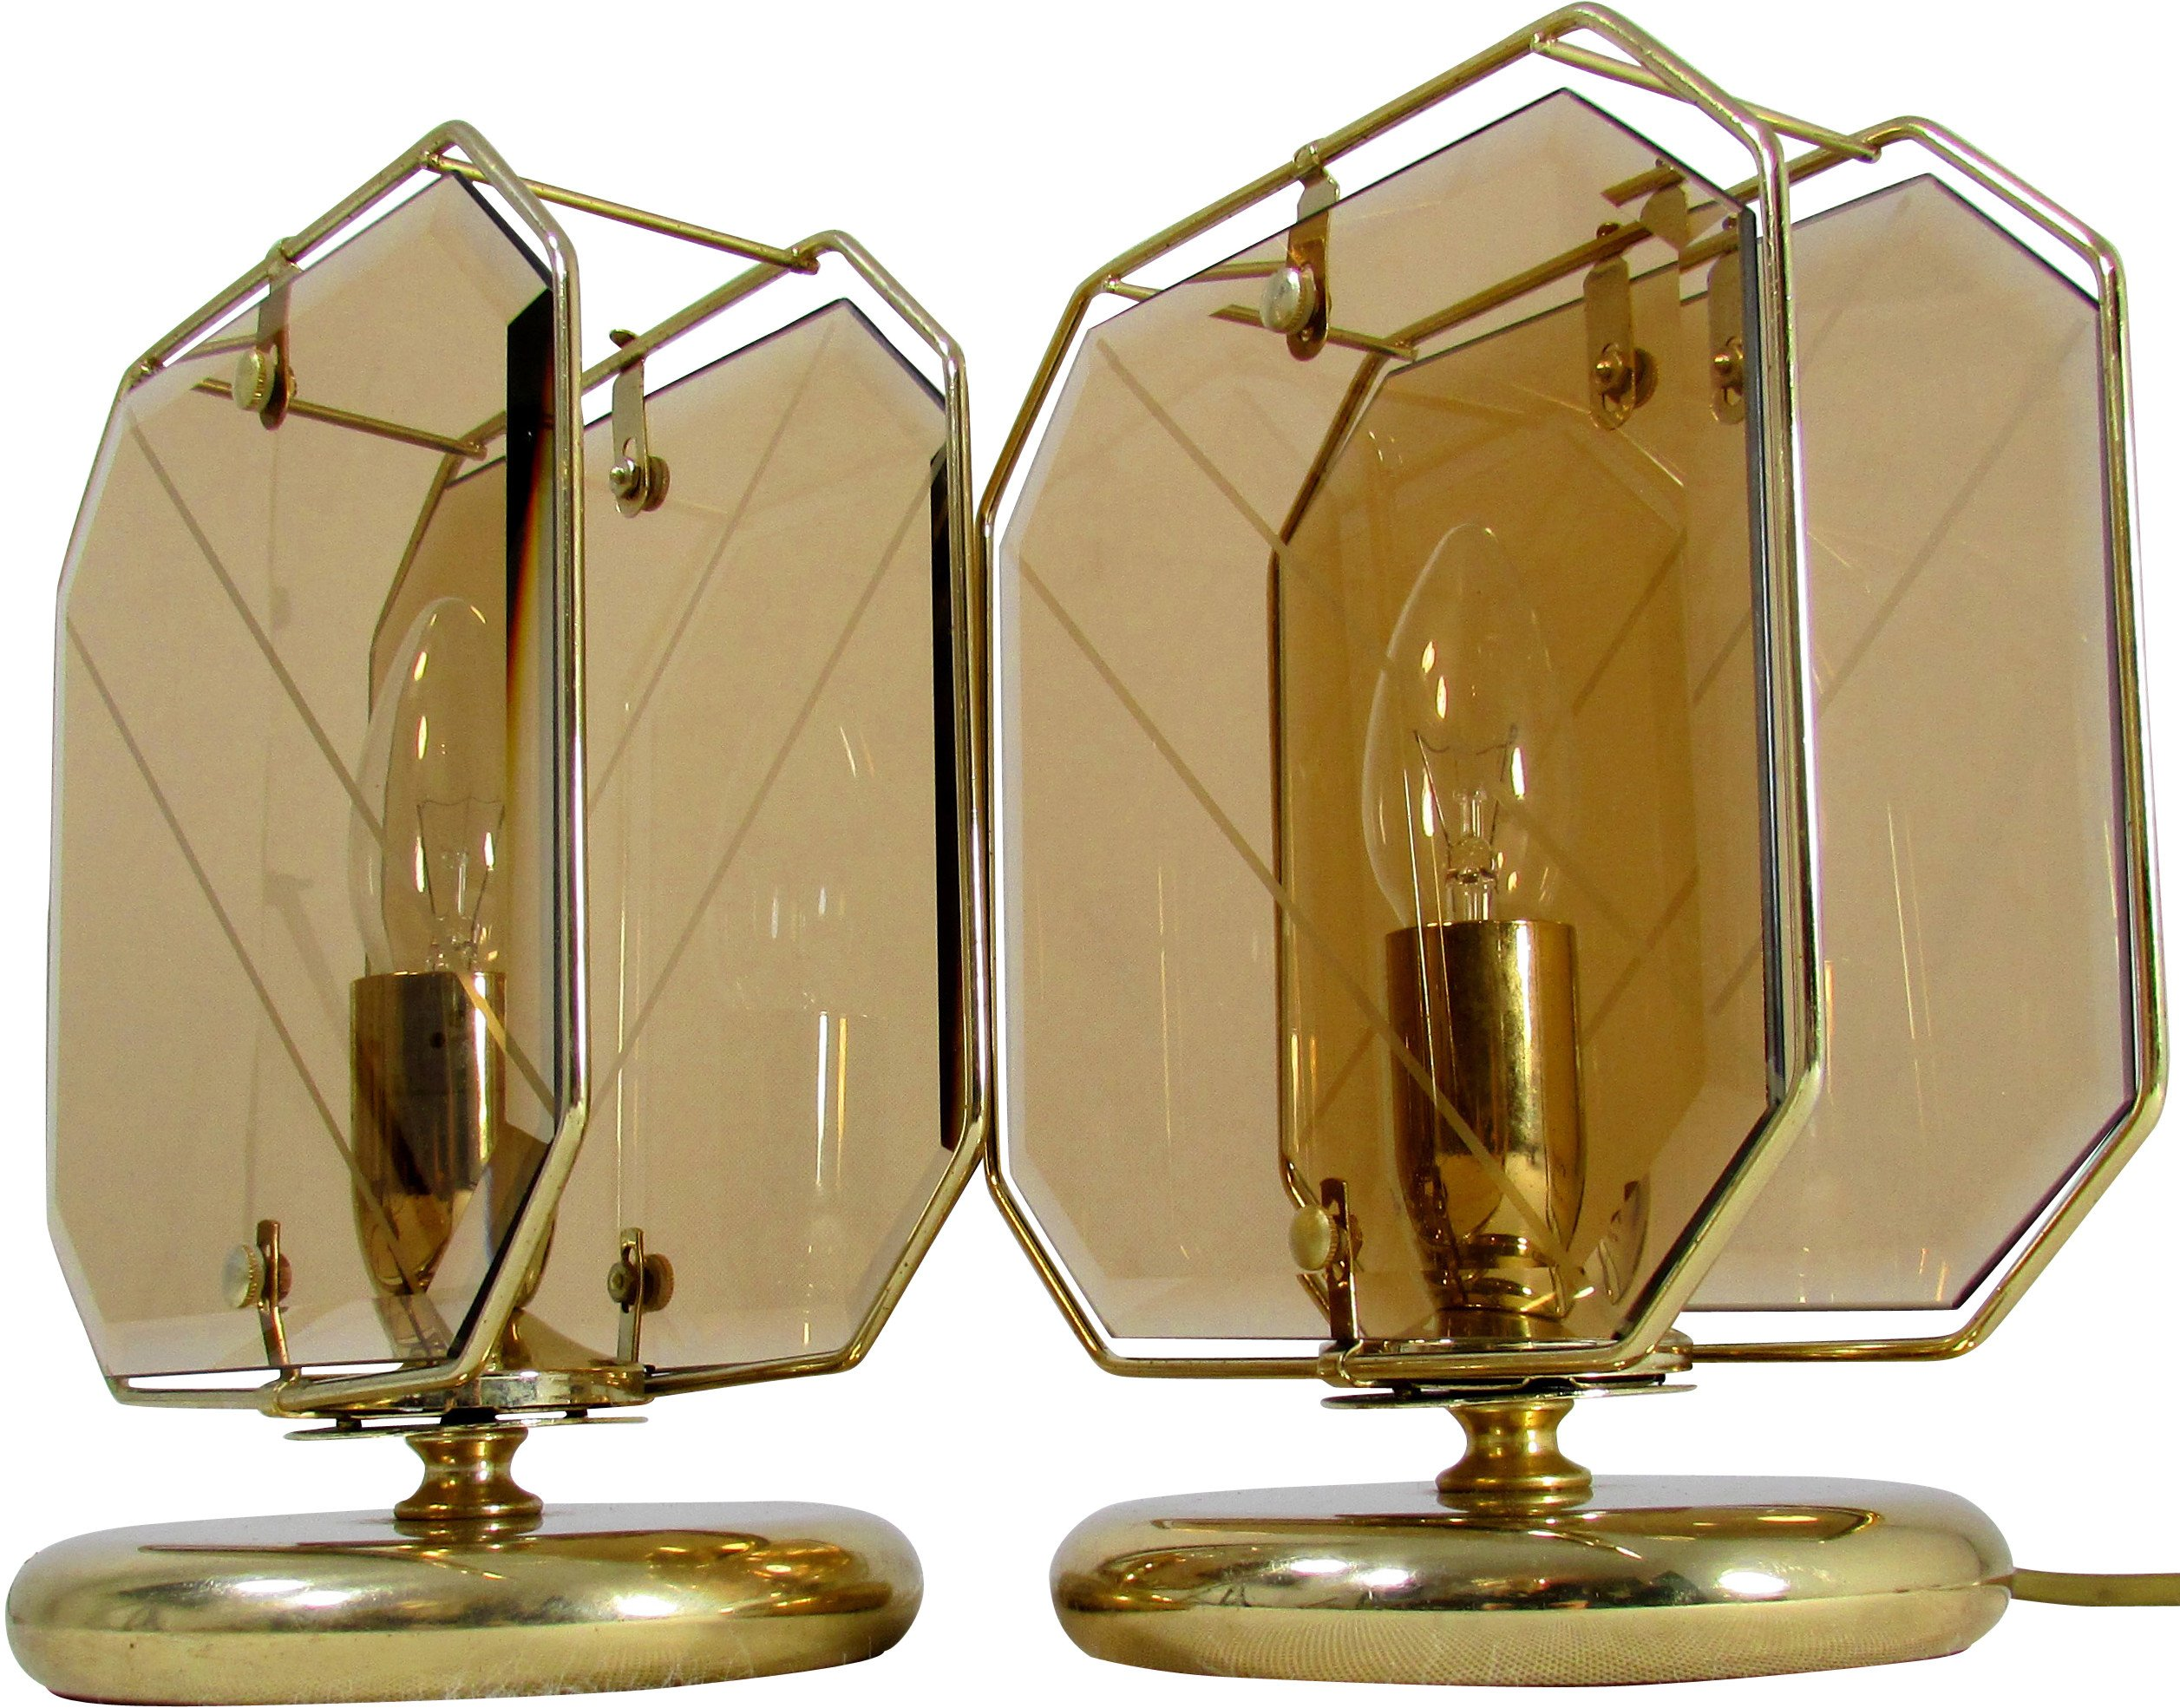 Pair of Bedroom Lamps, Germany, 1960s